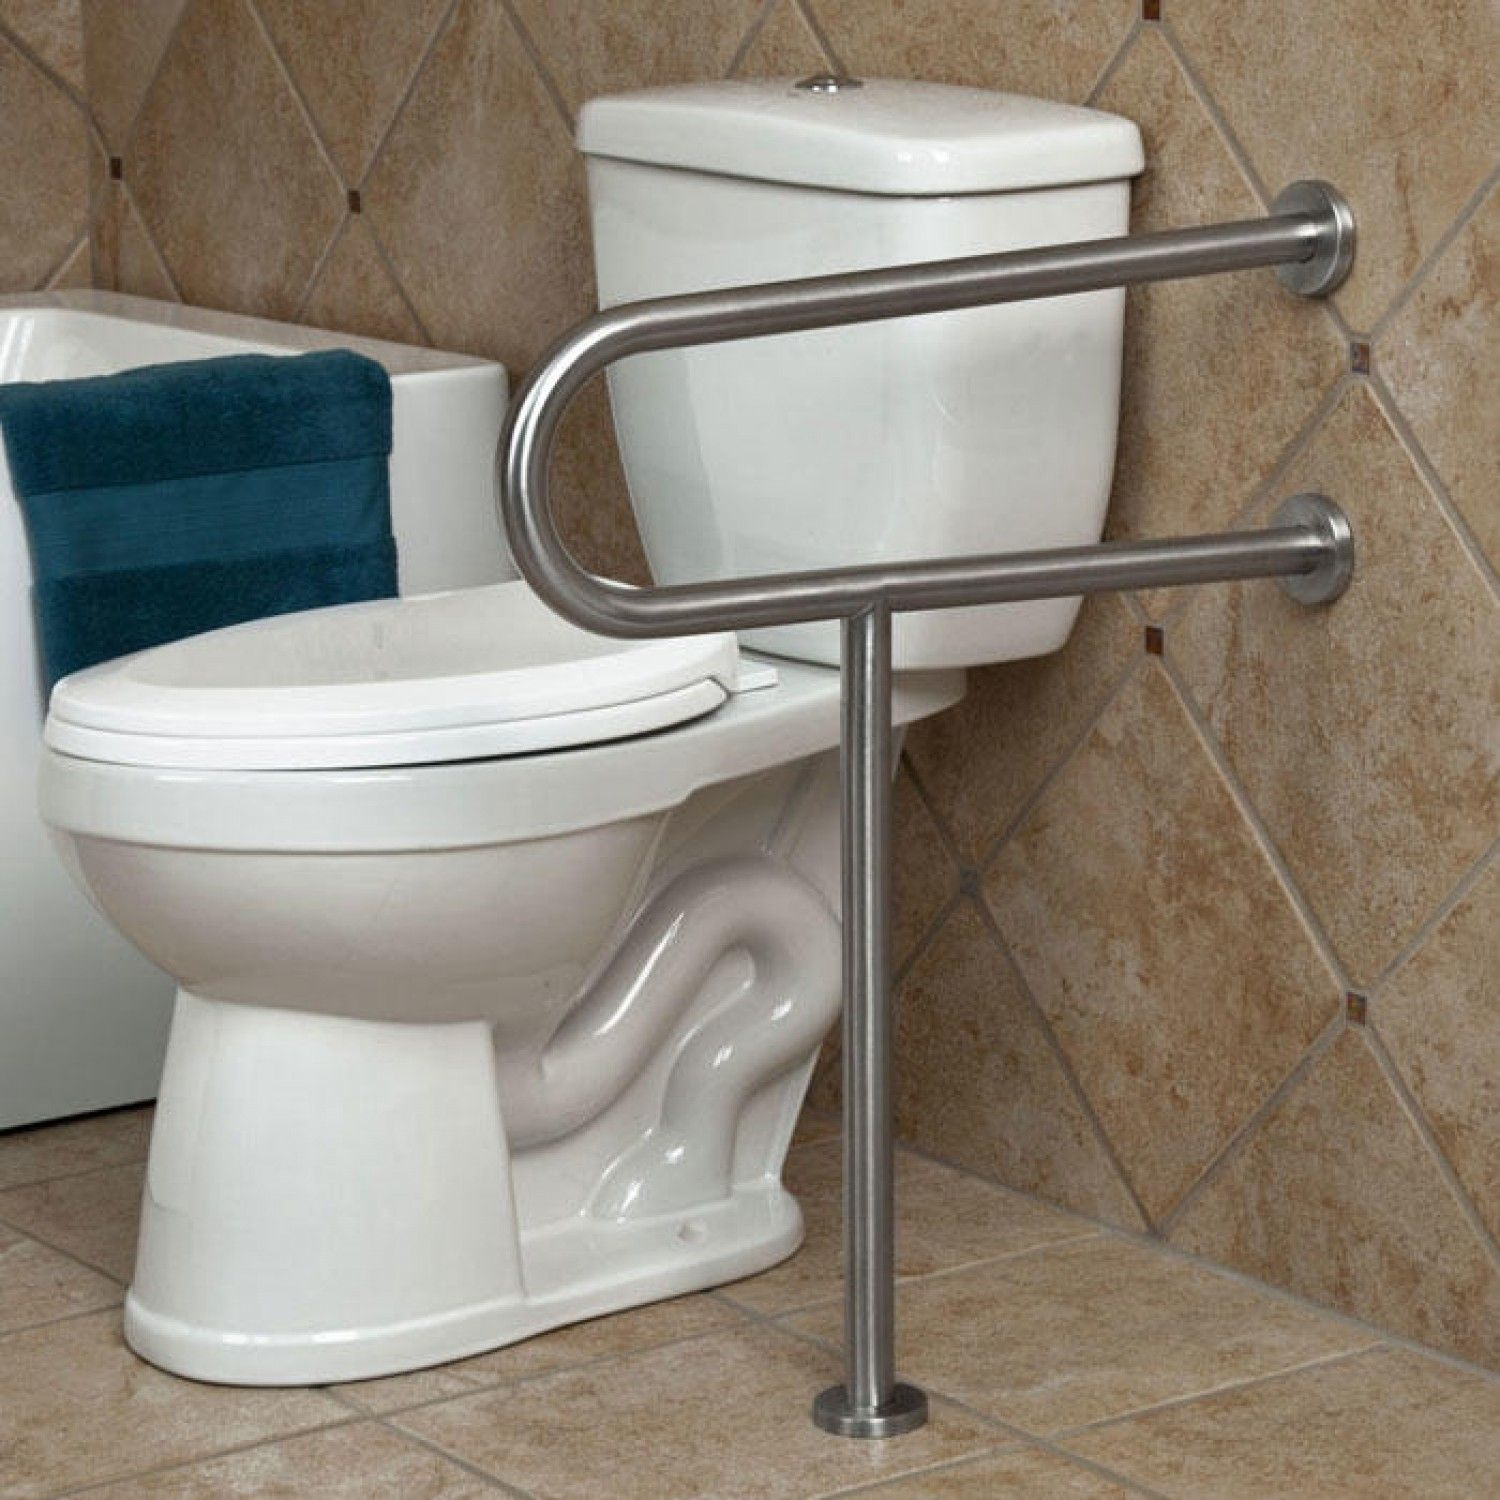 luxury wheelchair design handicap ideas visual bathroom l